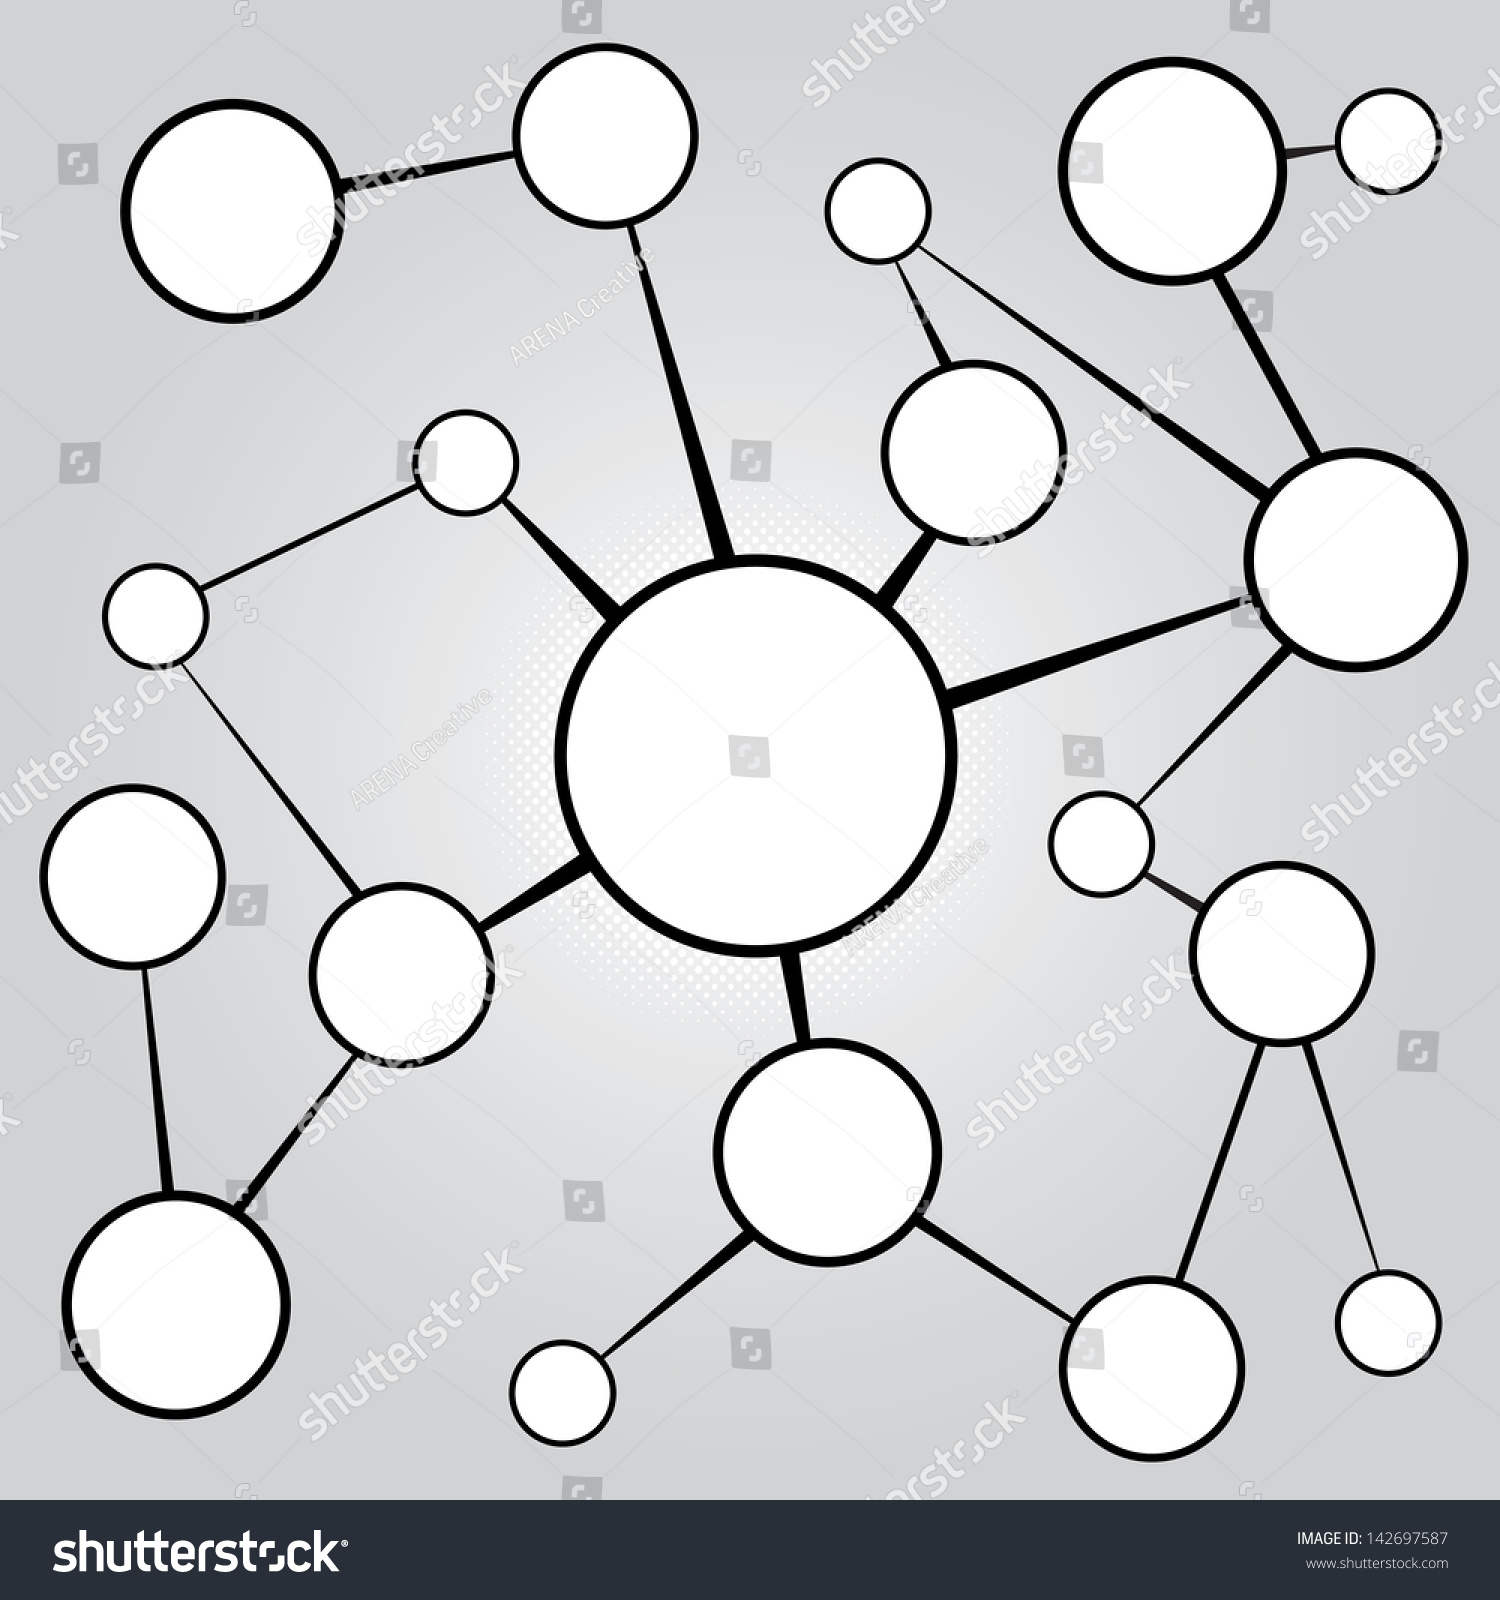 Empty flow chart diagram circles connecting stock illustration an empty flow chart diagram with circles connecting together a great social media or social nvjuhfo Gallery